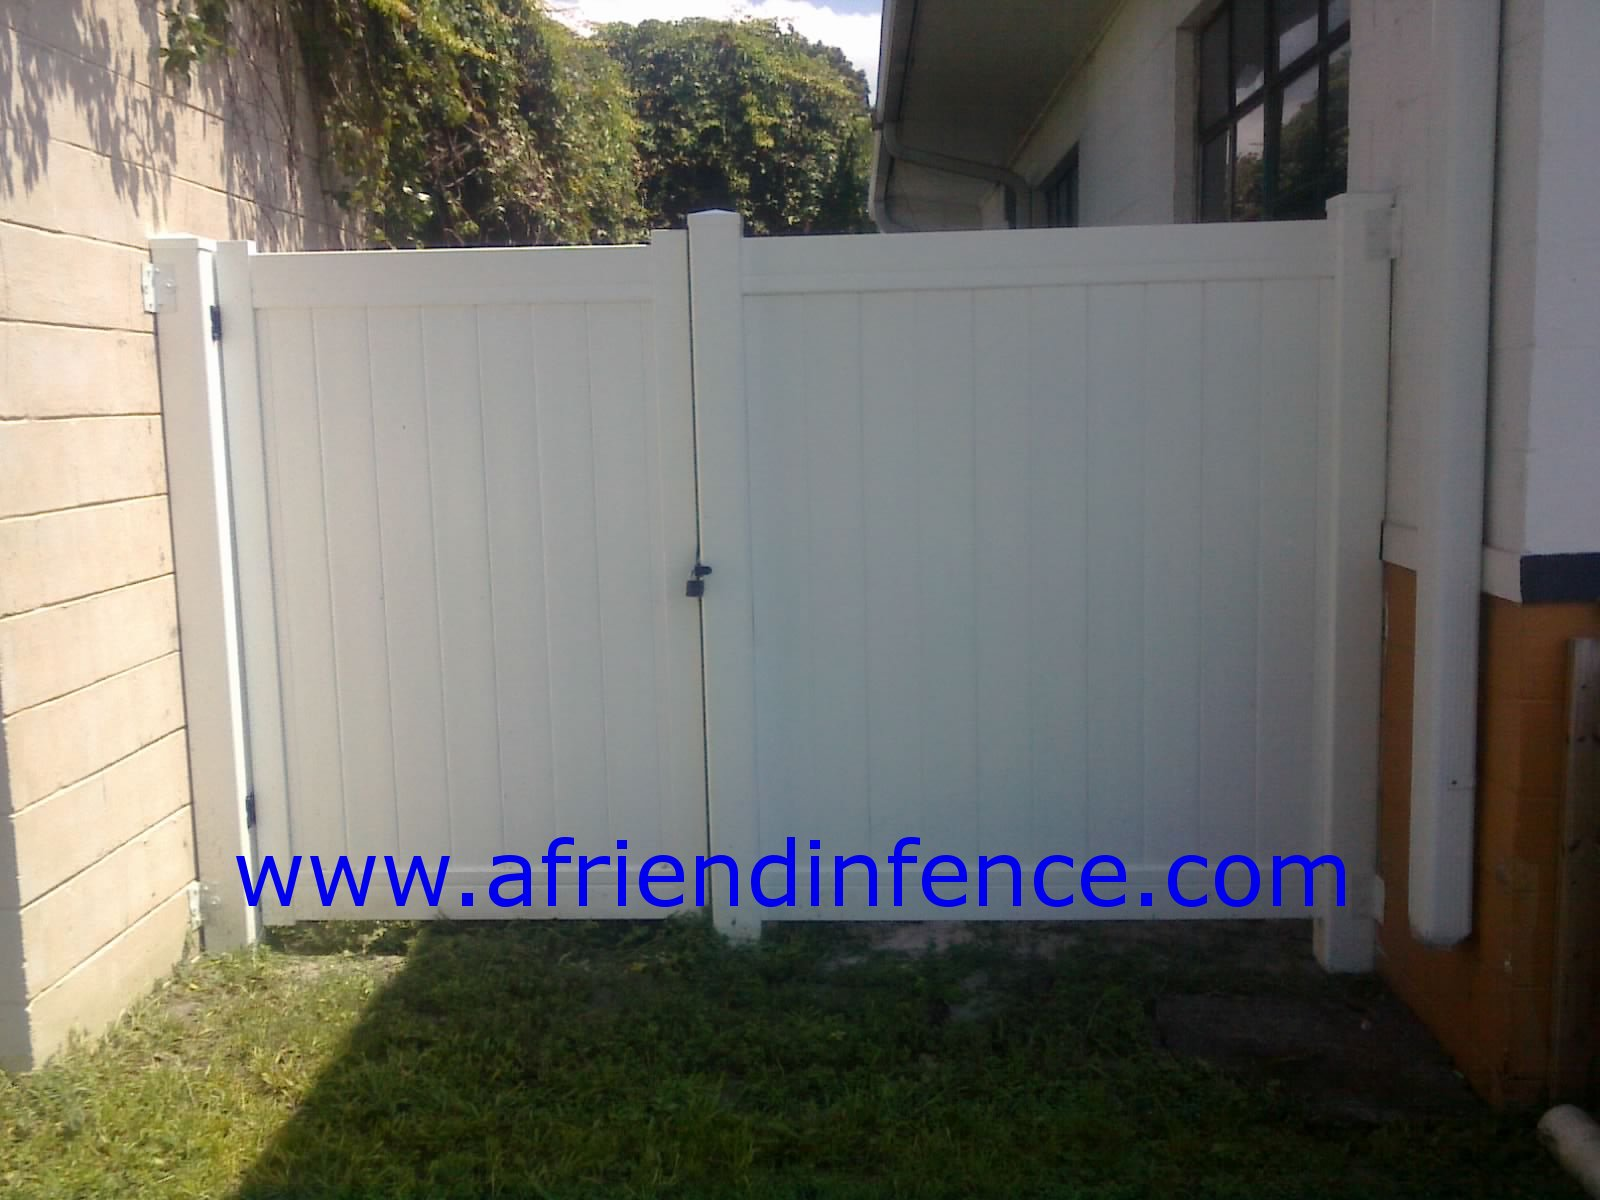 A Friend In Fence: Services. Fence Installation/repairs, Access Systems  Installation/repair, Gate Builder/installation/repair. Central Florida